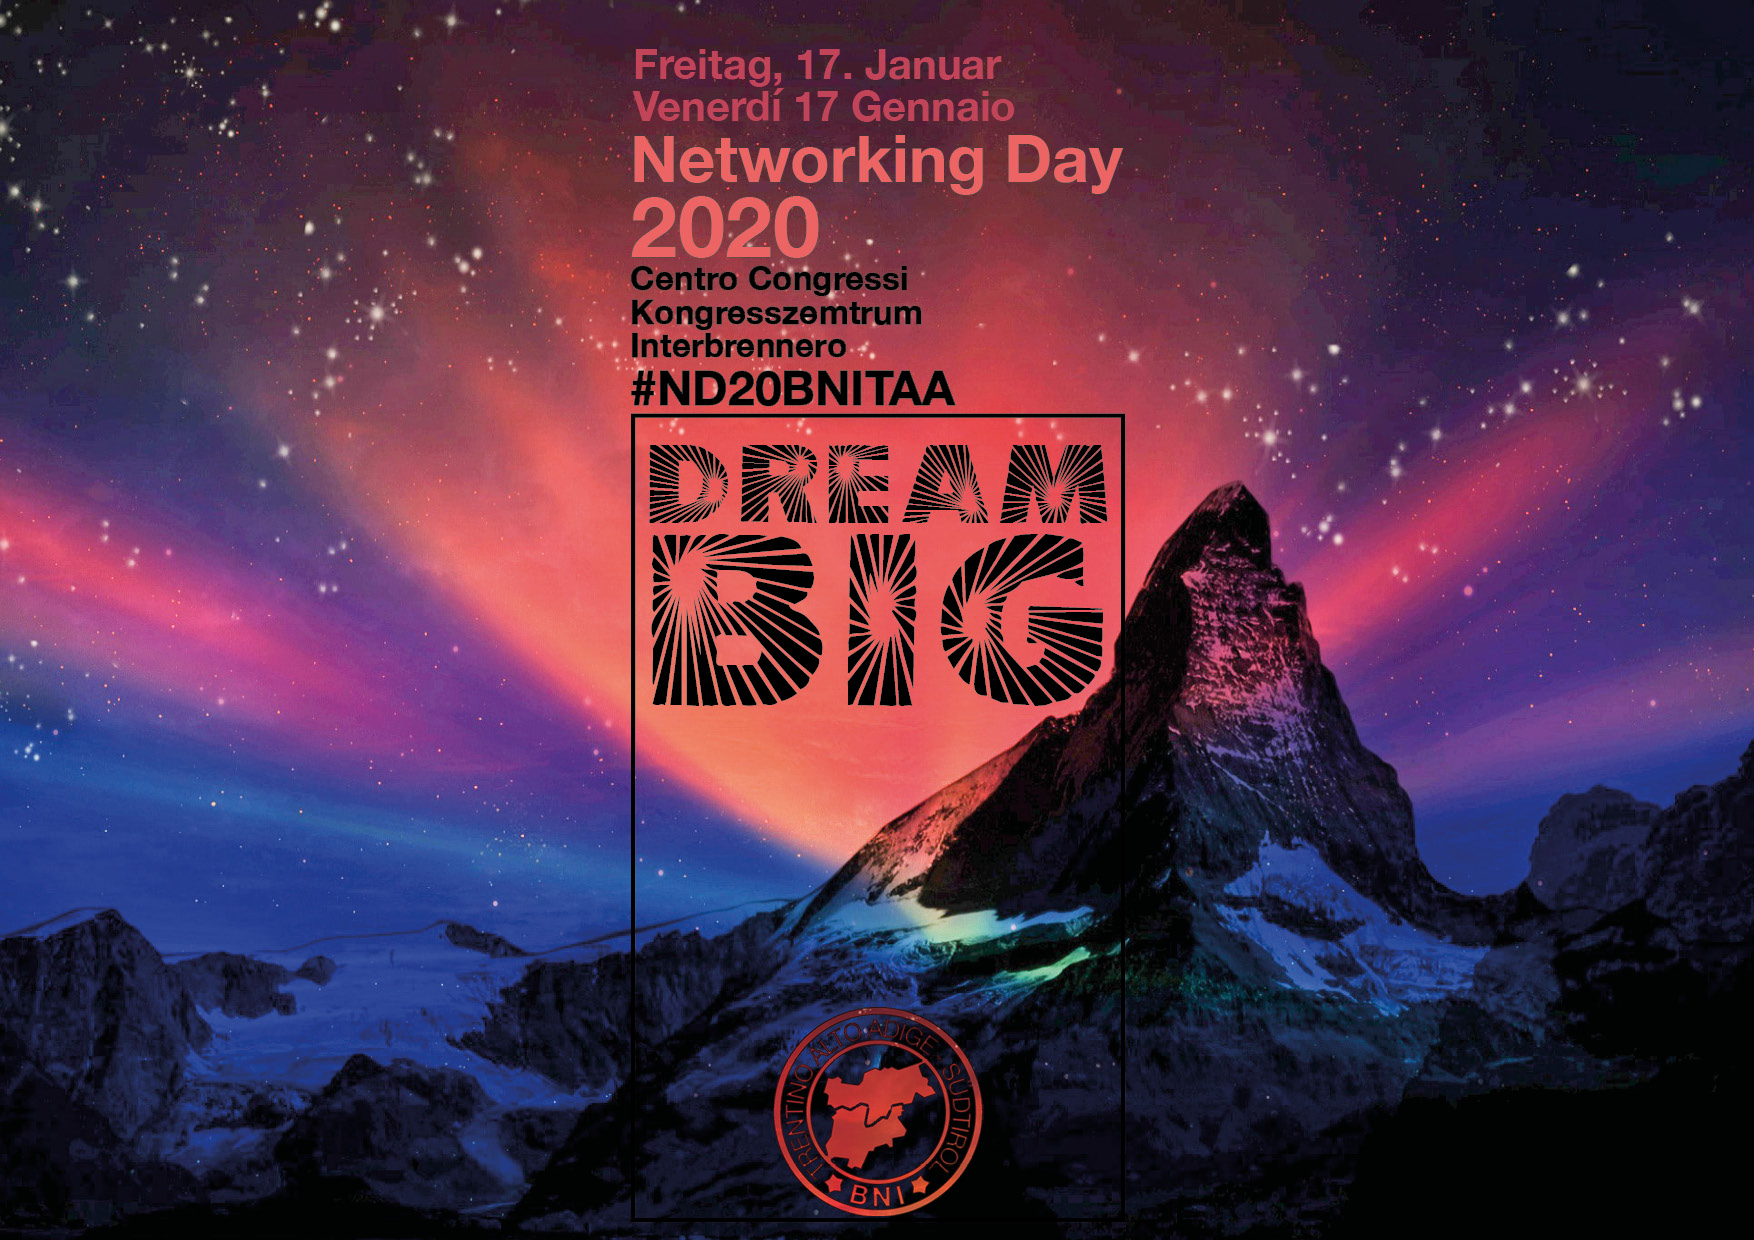 Networking Day 2020